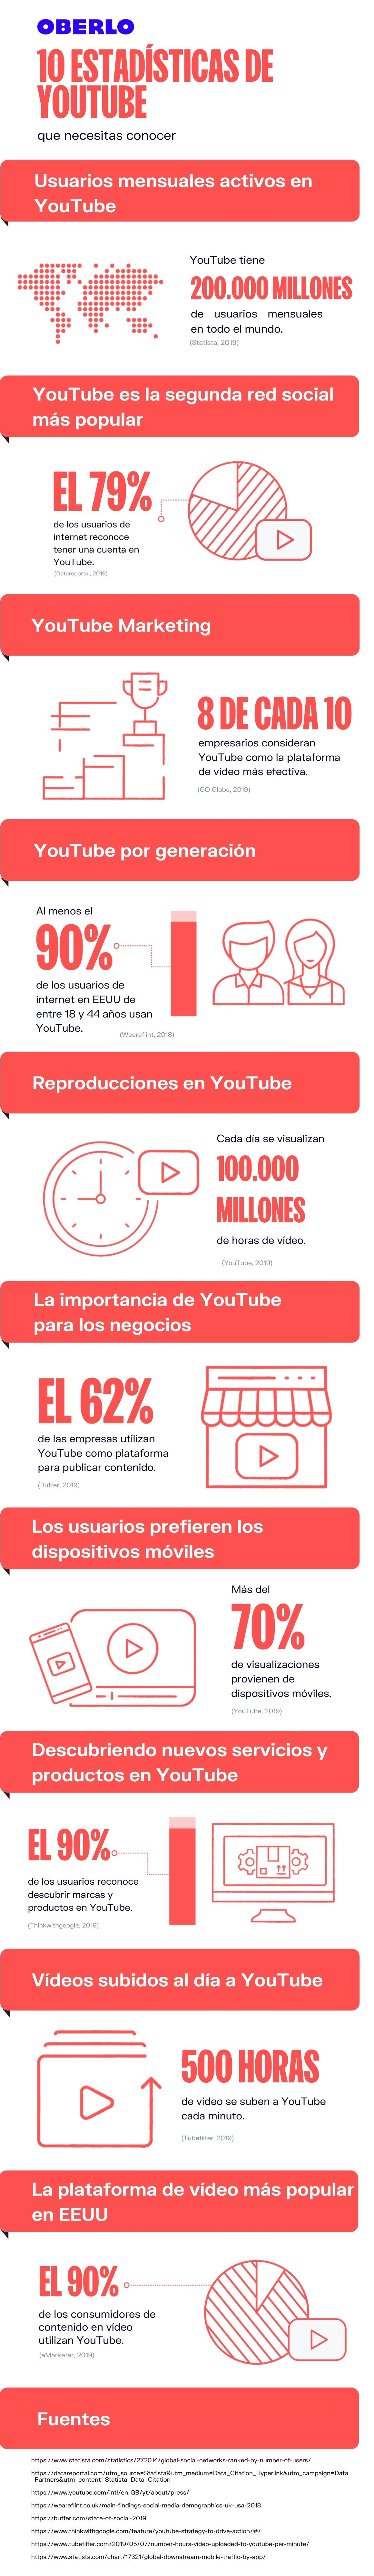 Youtube Estadisticas